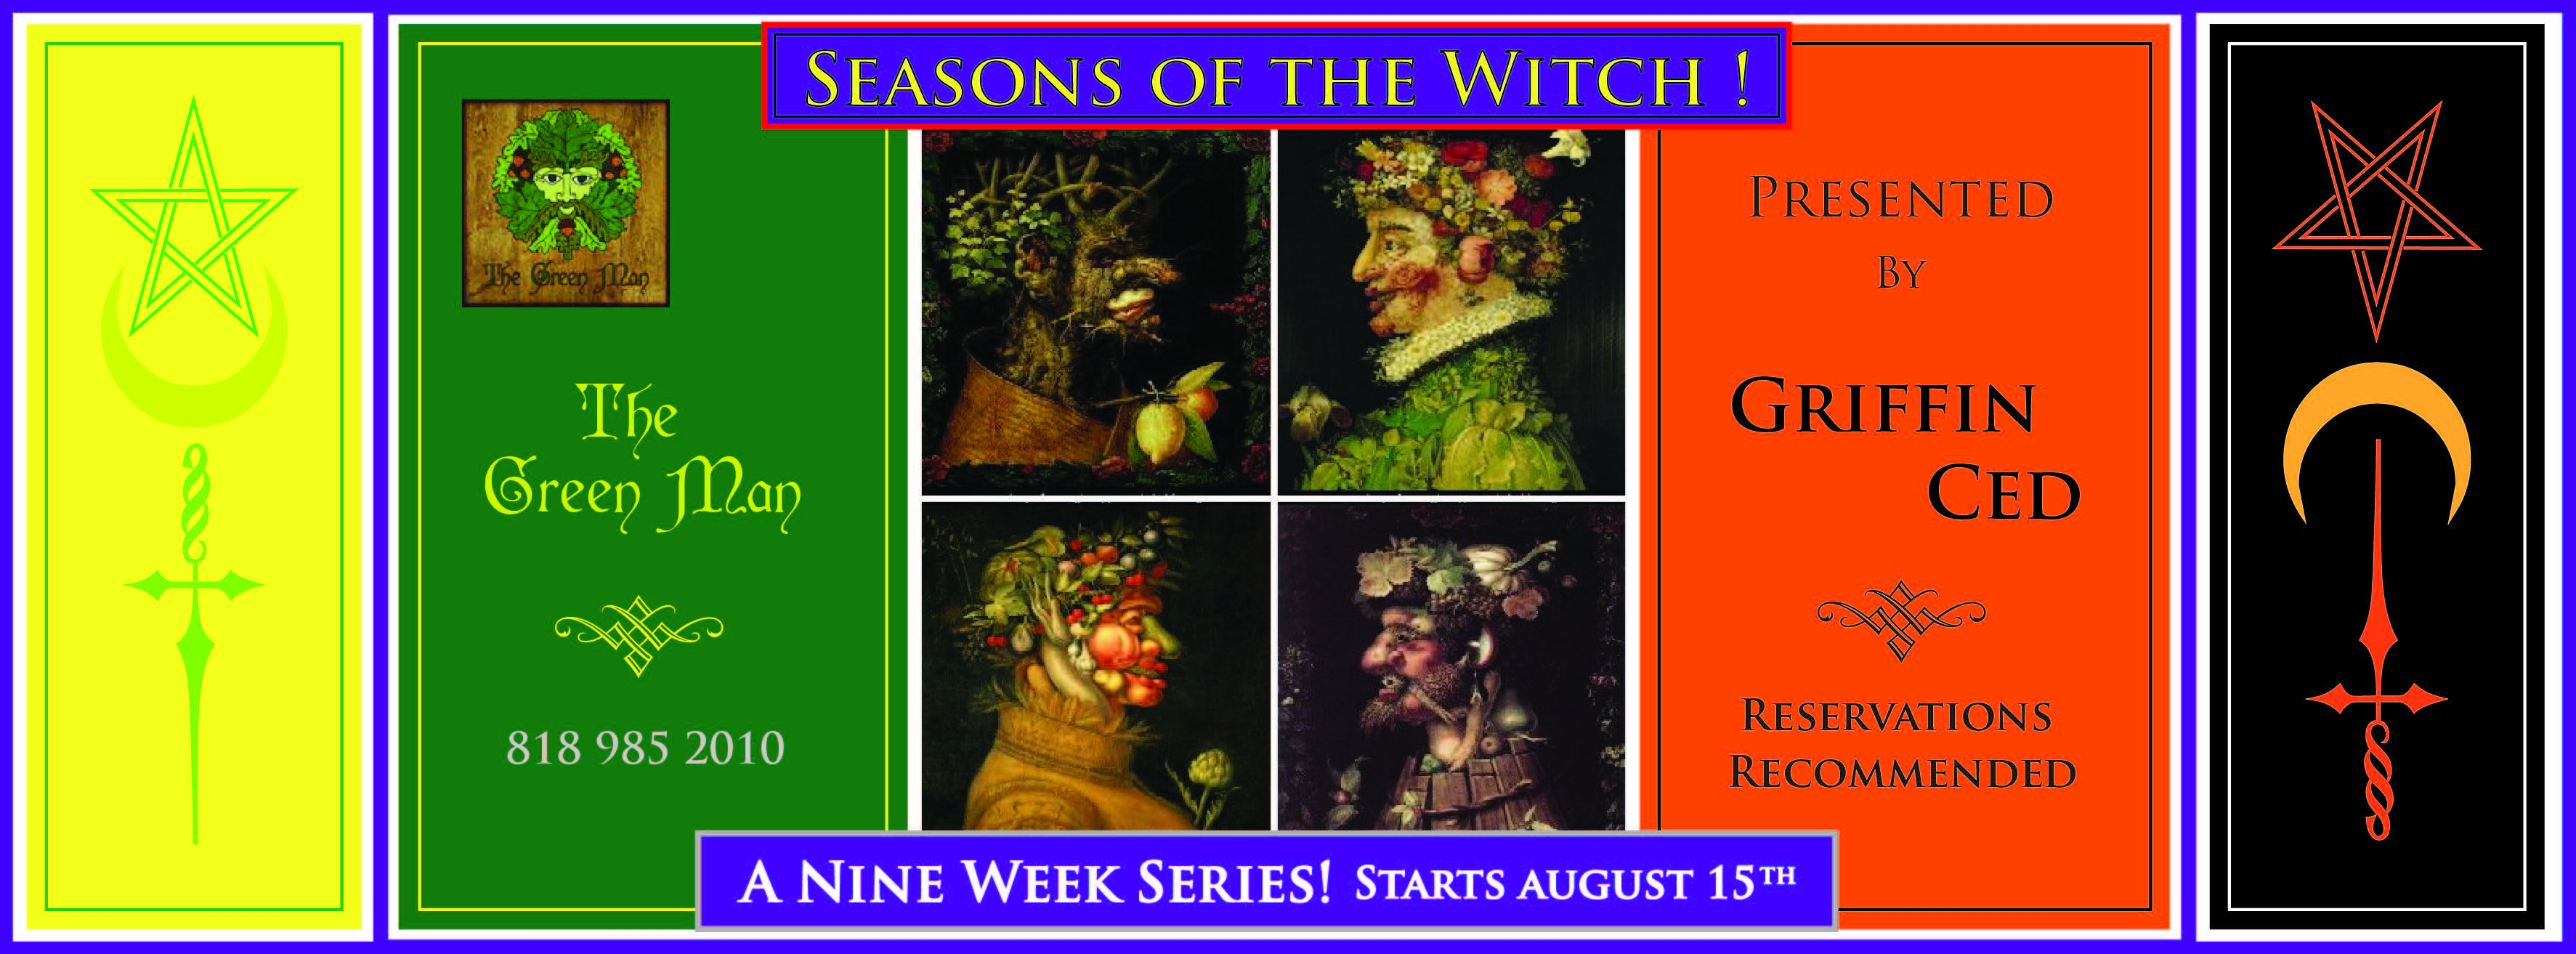 traditional witchcraft series Los Angeles